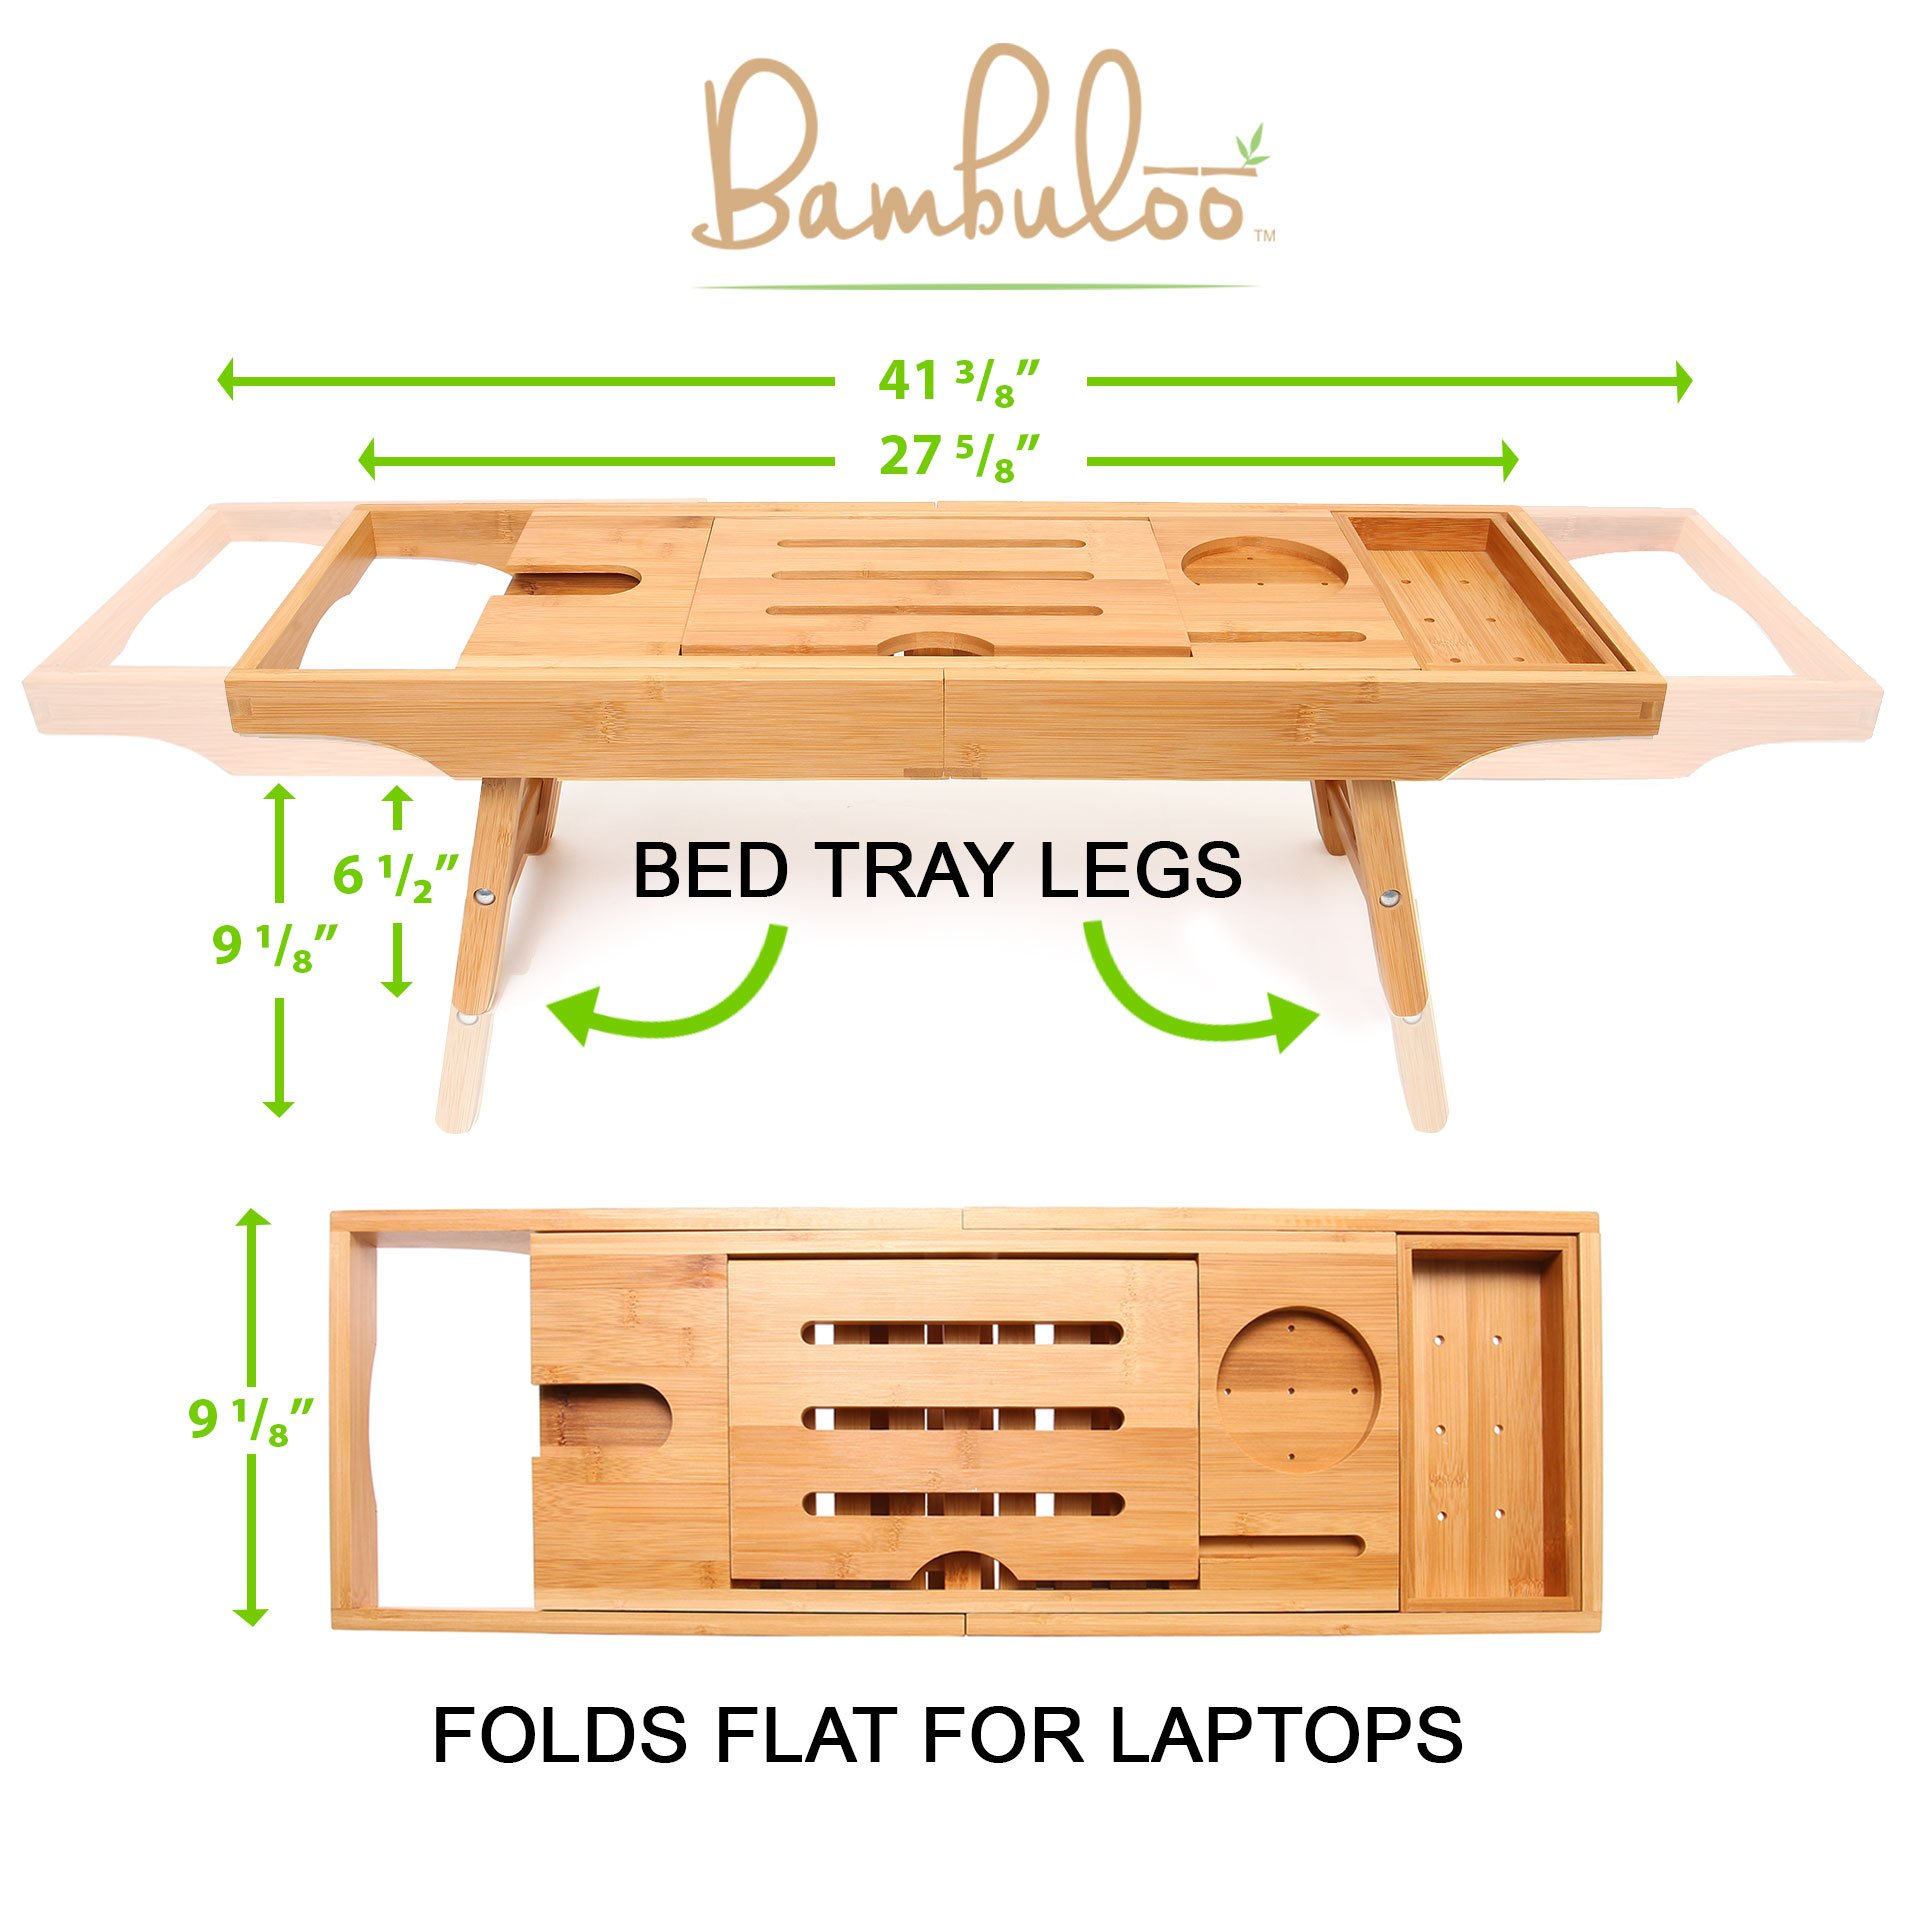 Bathtub Caddy and Bed Tray Combo - Premium Bamboo Wood with 2 Lavender Bath Bombs - Folding Legs/Fully Adjustable - Mold Resistant - Phone Tablet and Wine Holders for The Finest Home Spa Experience by Bambuloo (Image #7)